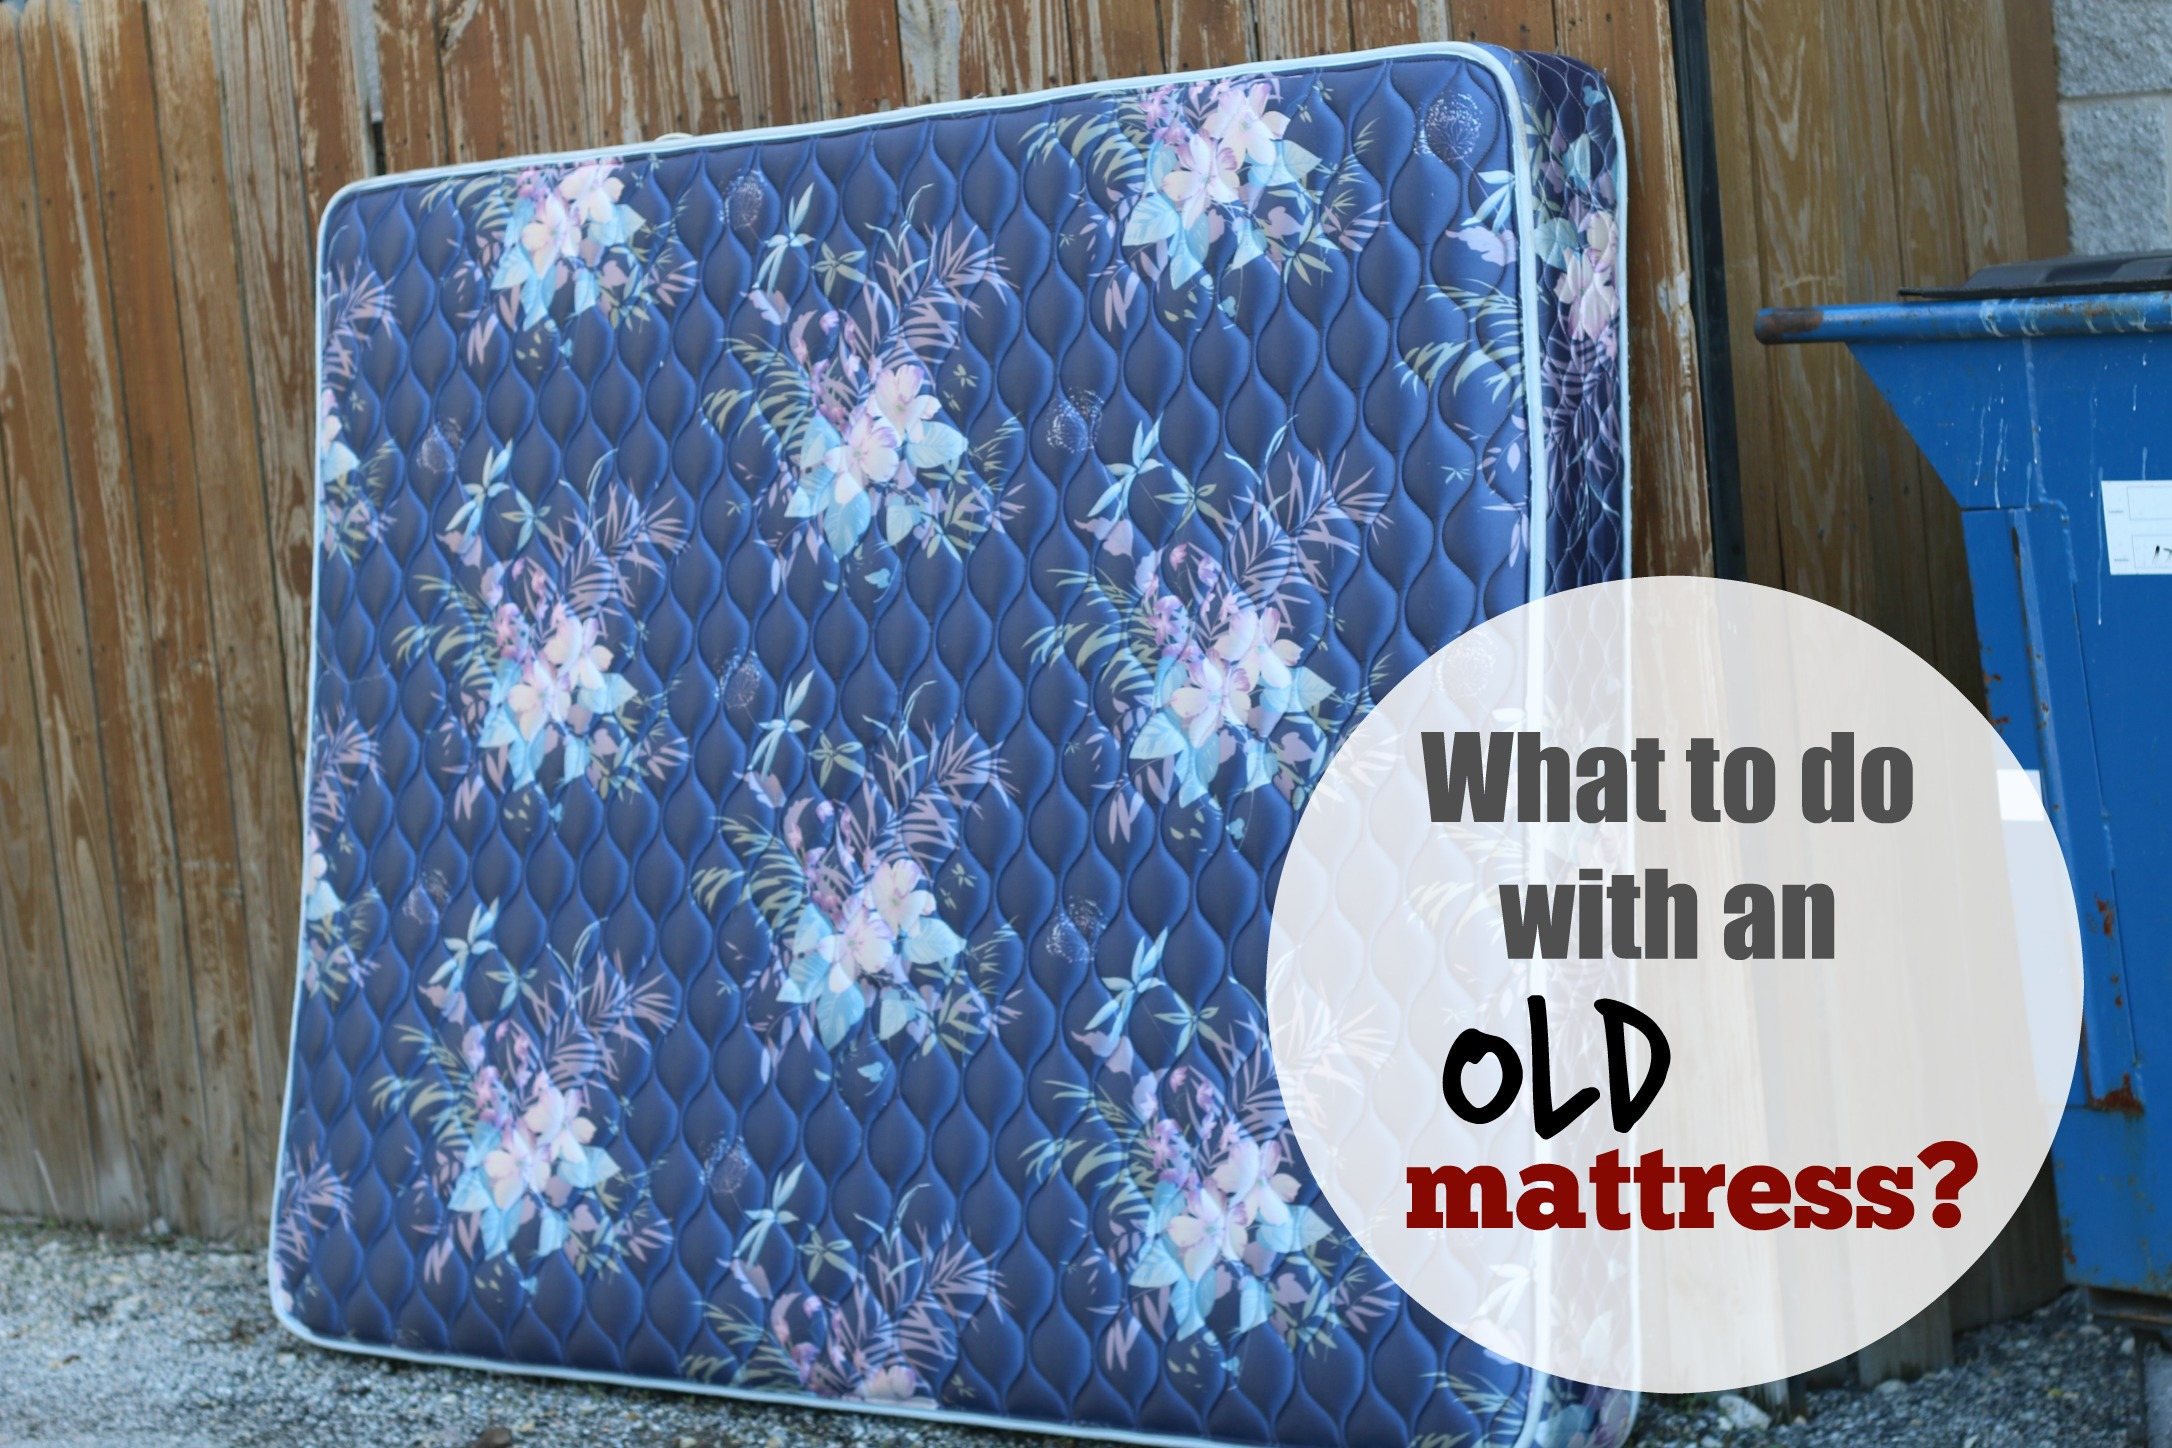 so what do you do with an old mattress